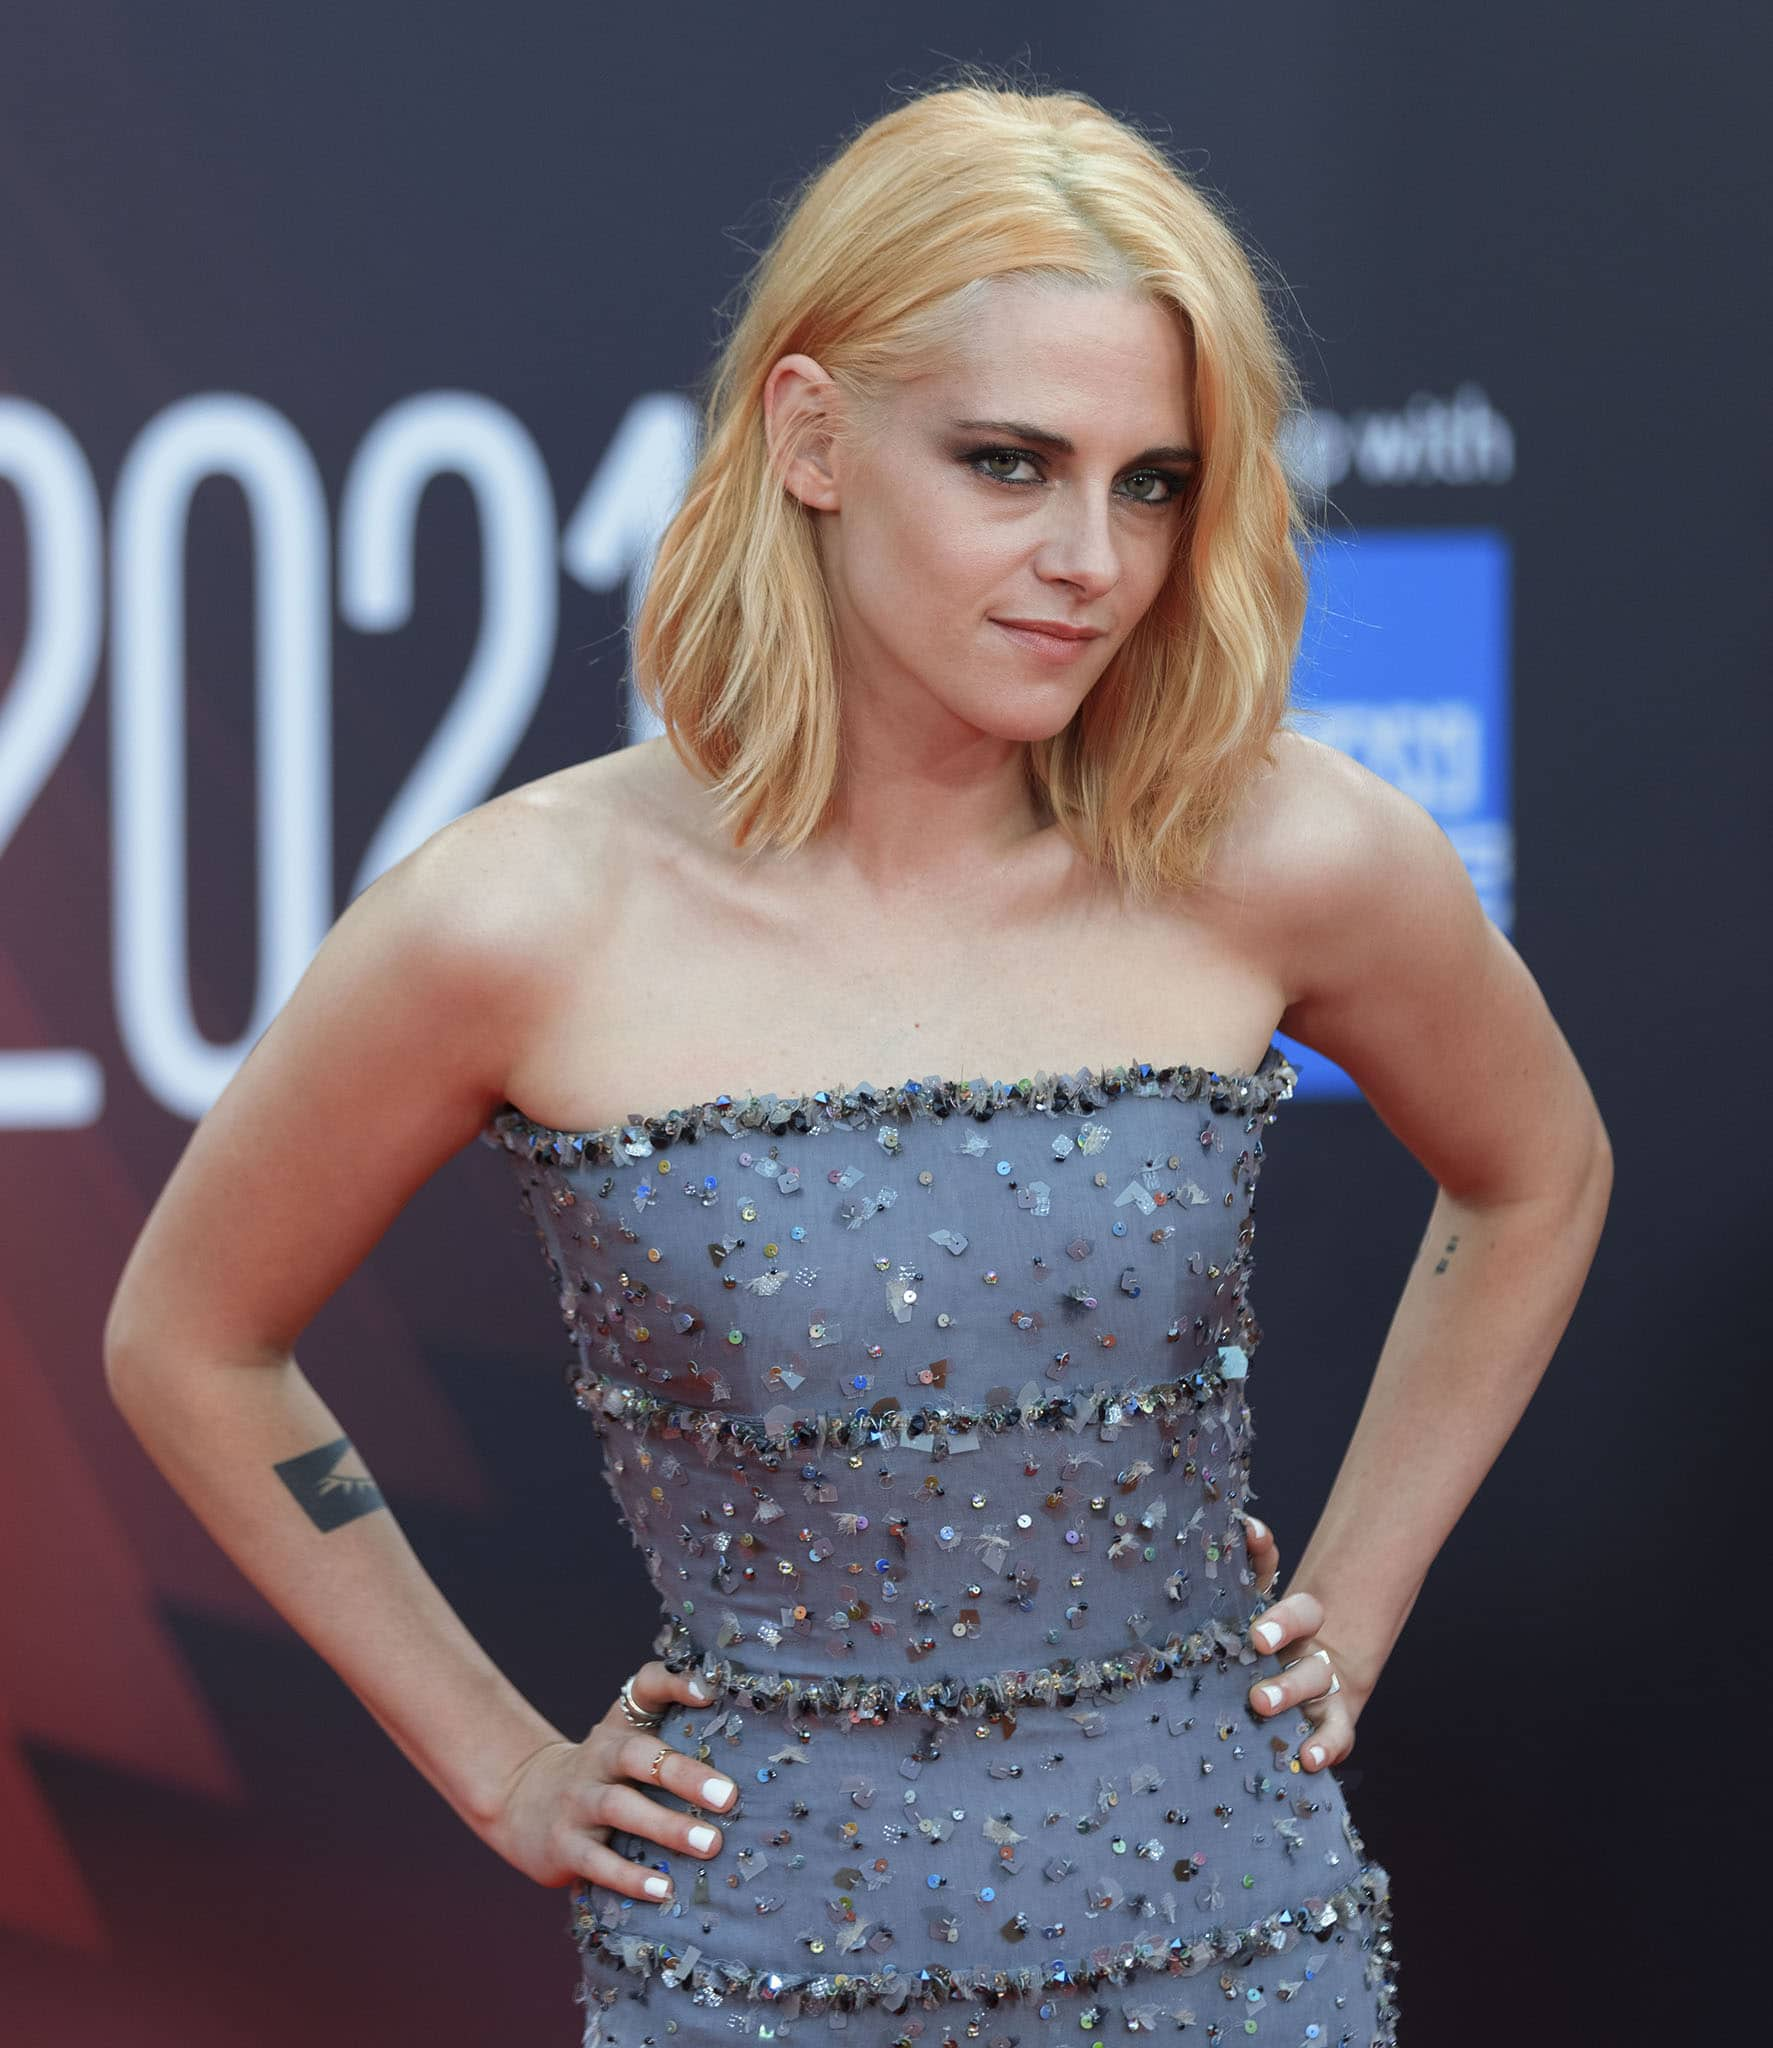 Kristen Stewart revealed she had TMJ due to anxiousness in portraying Princess Diana